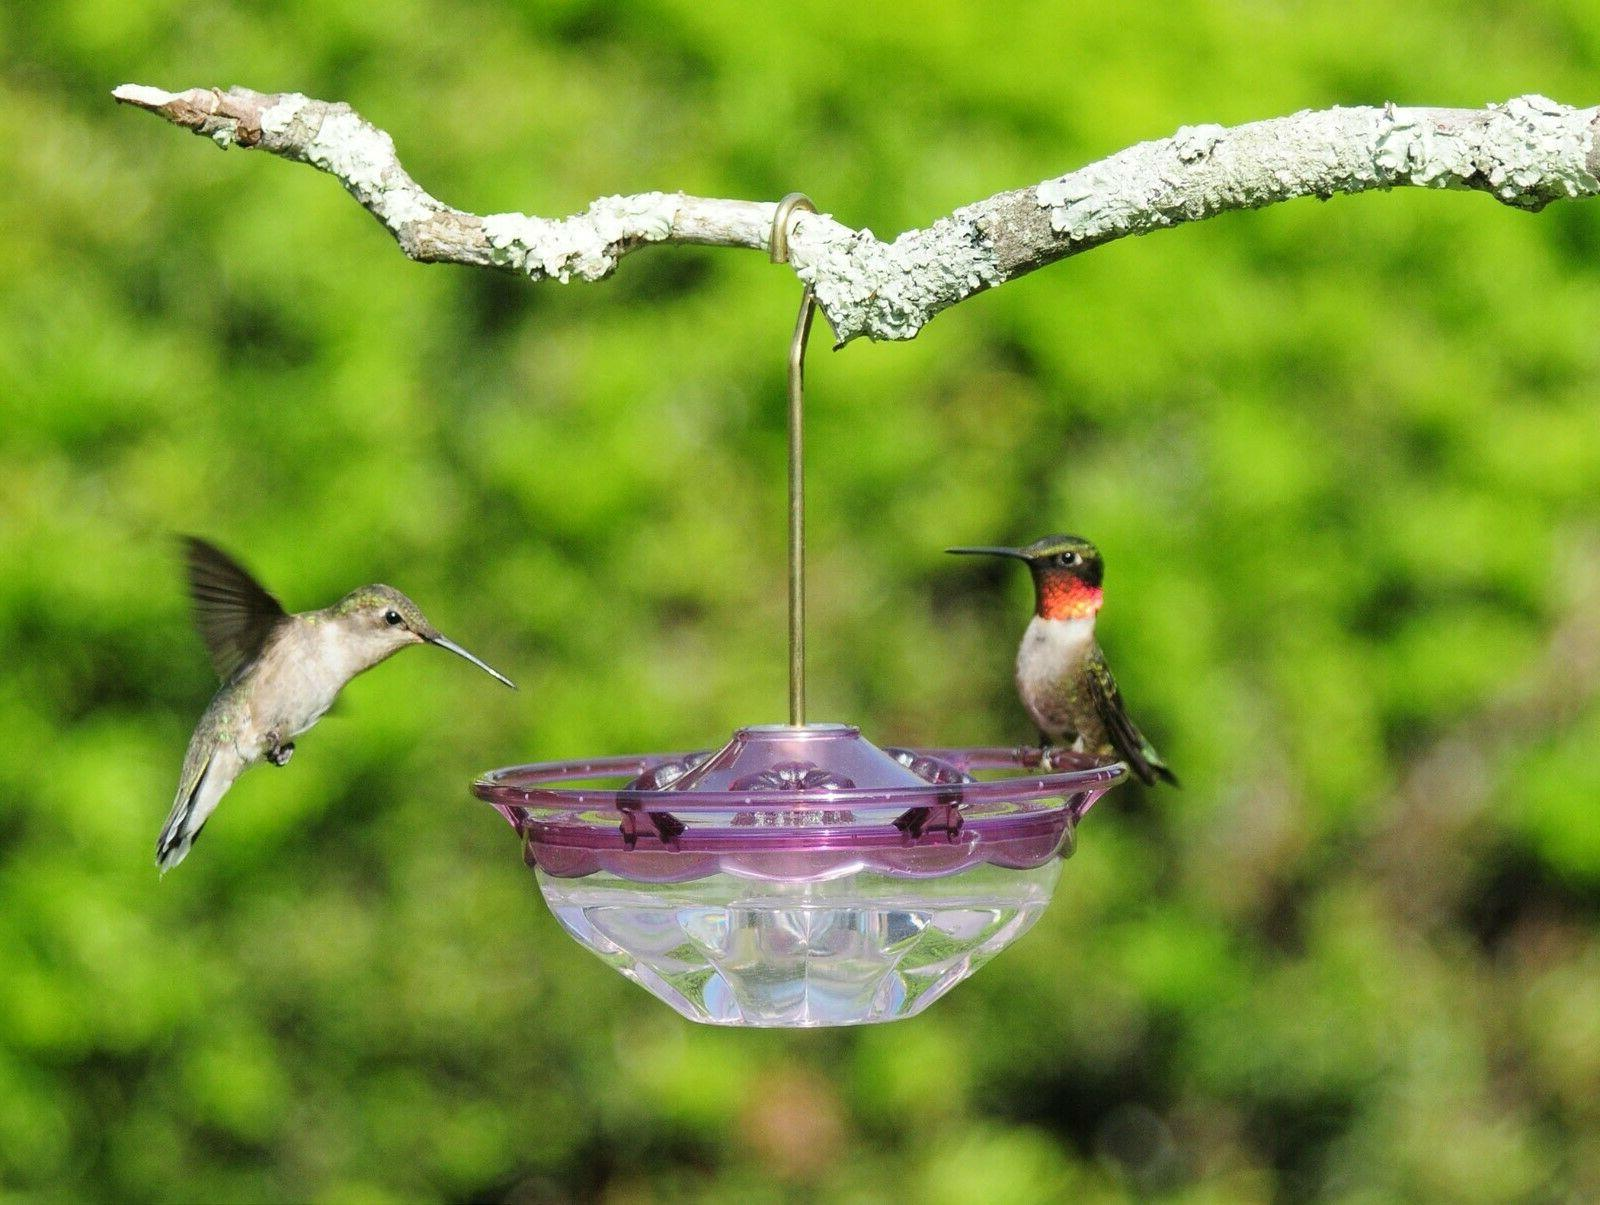 Hummingbird Feeder Nwt First Nature 16oz Plastic Nectar Feeders Home & Garden